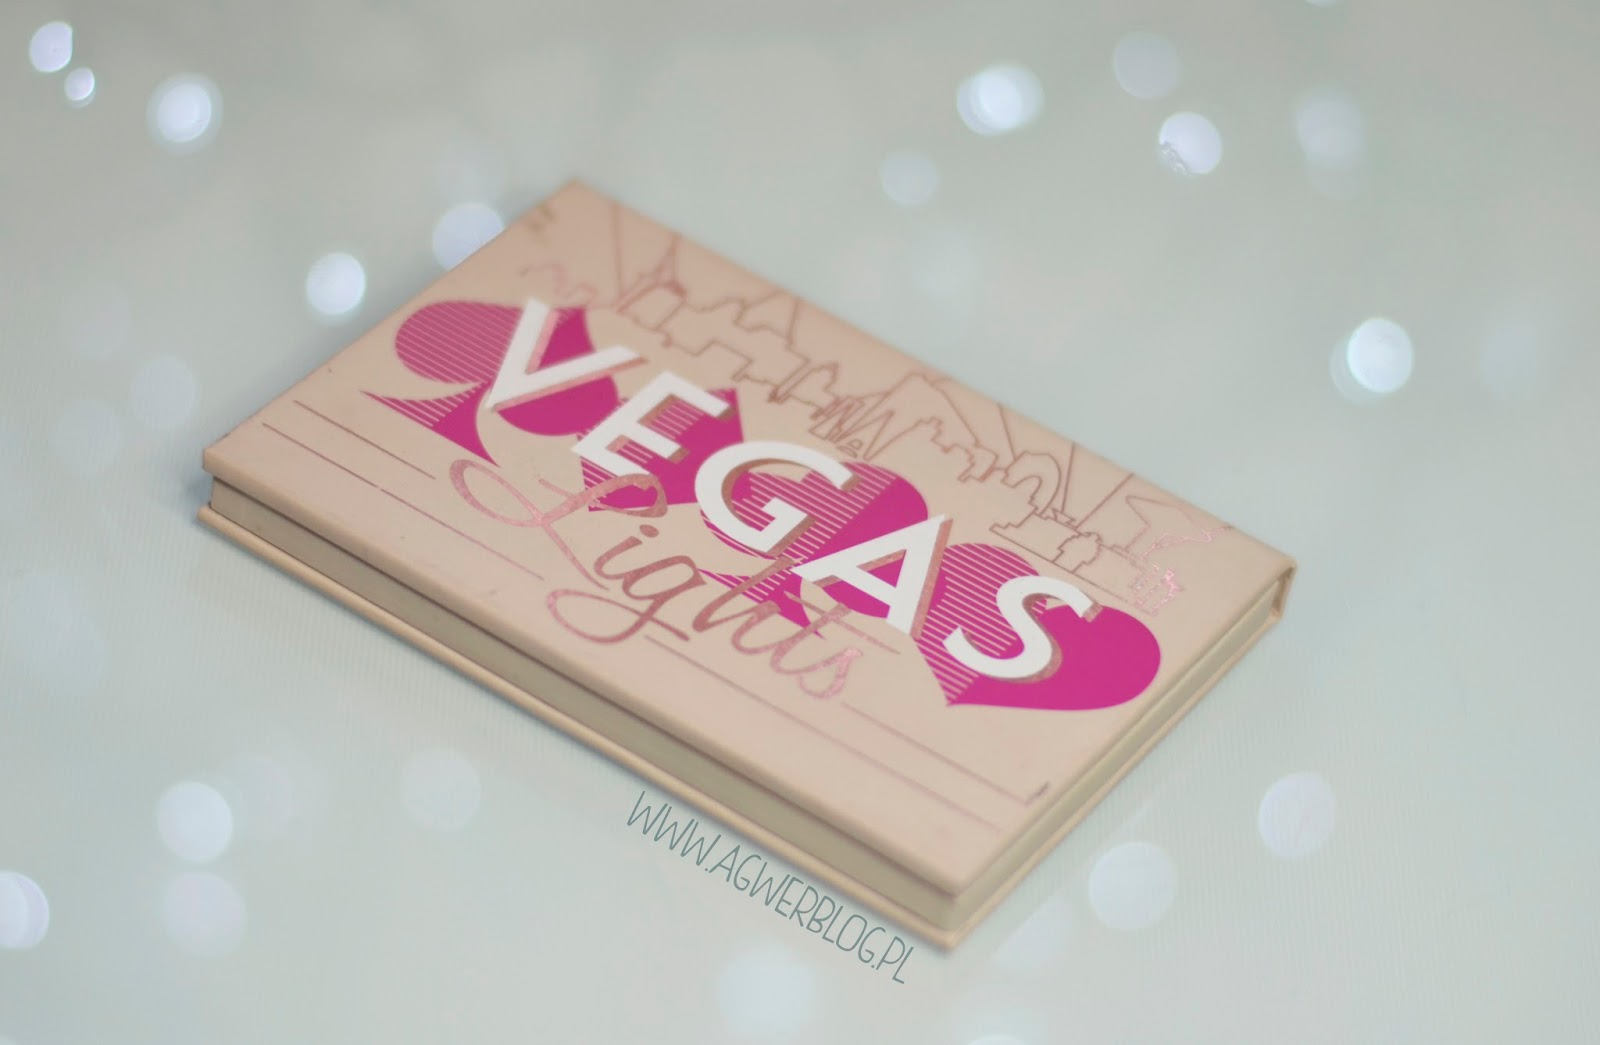 # Vegas Lights Makeup Geek